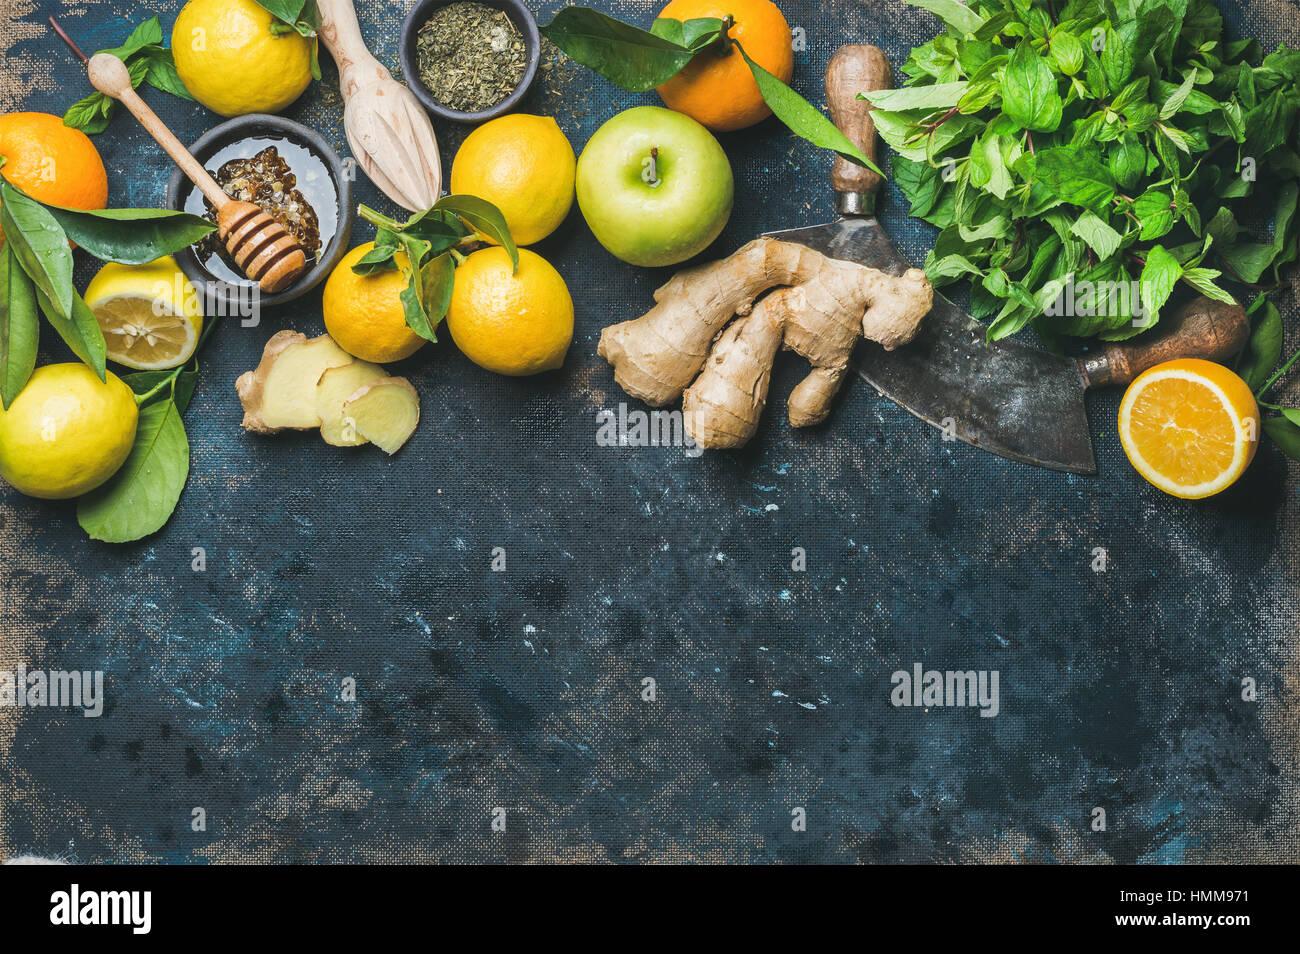 Ingredients for making immunity boosting natural hot drink in box - Stock Image